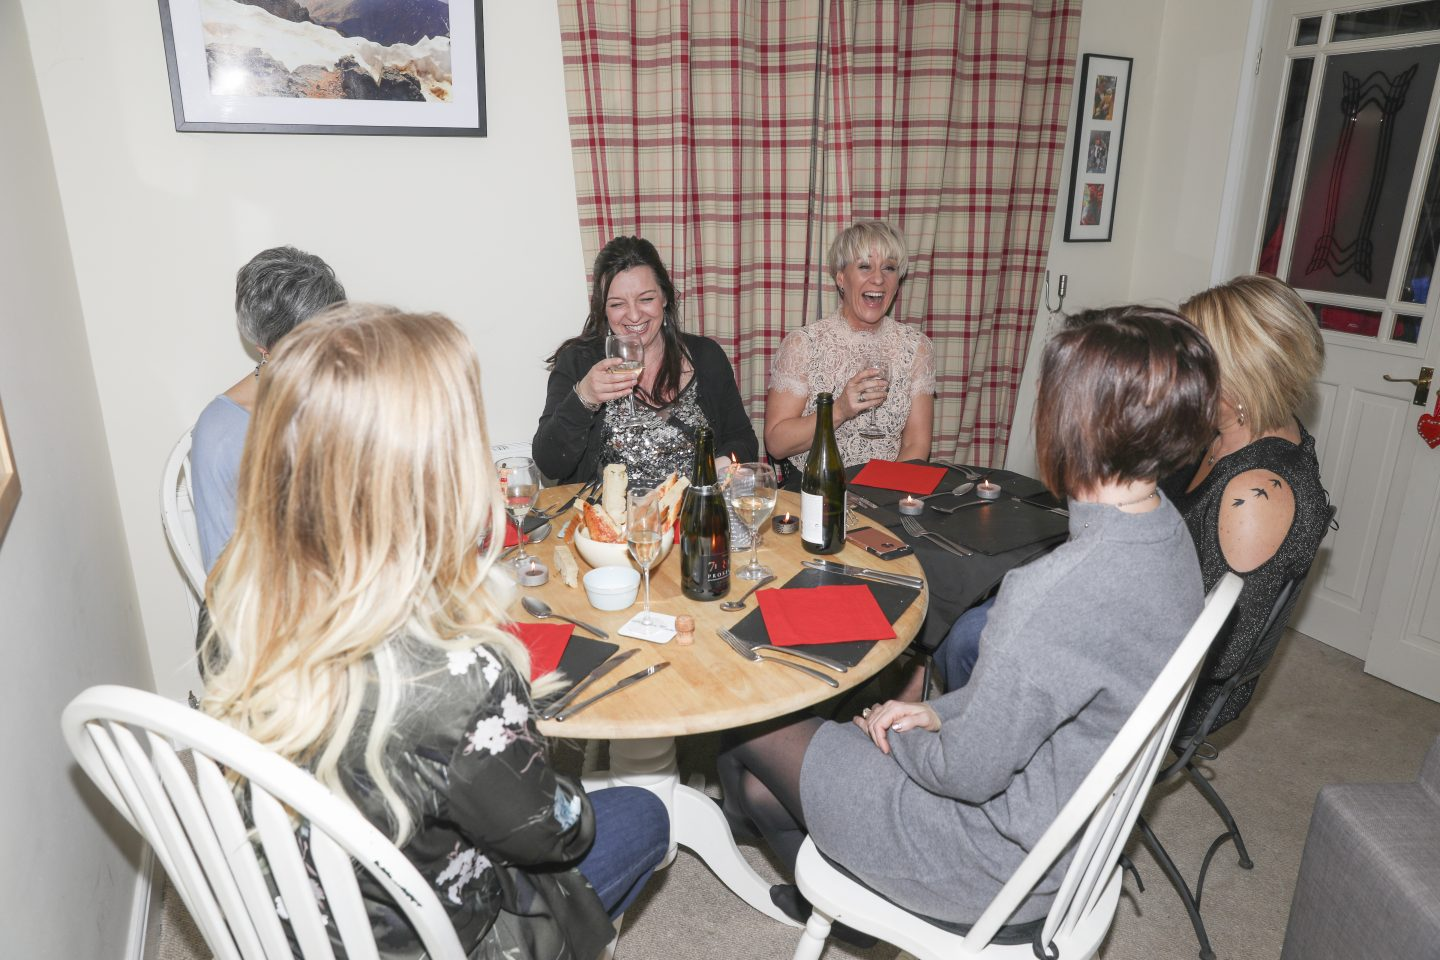 Entertaining at home with La Belle Assiette